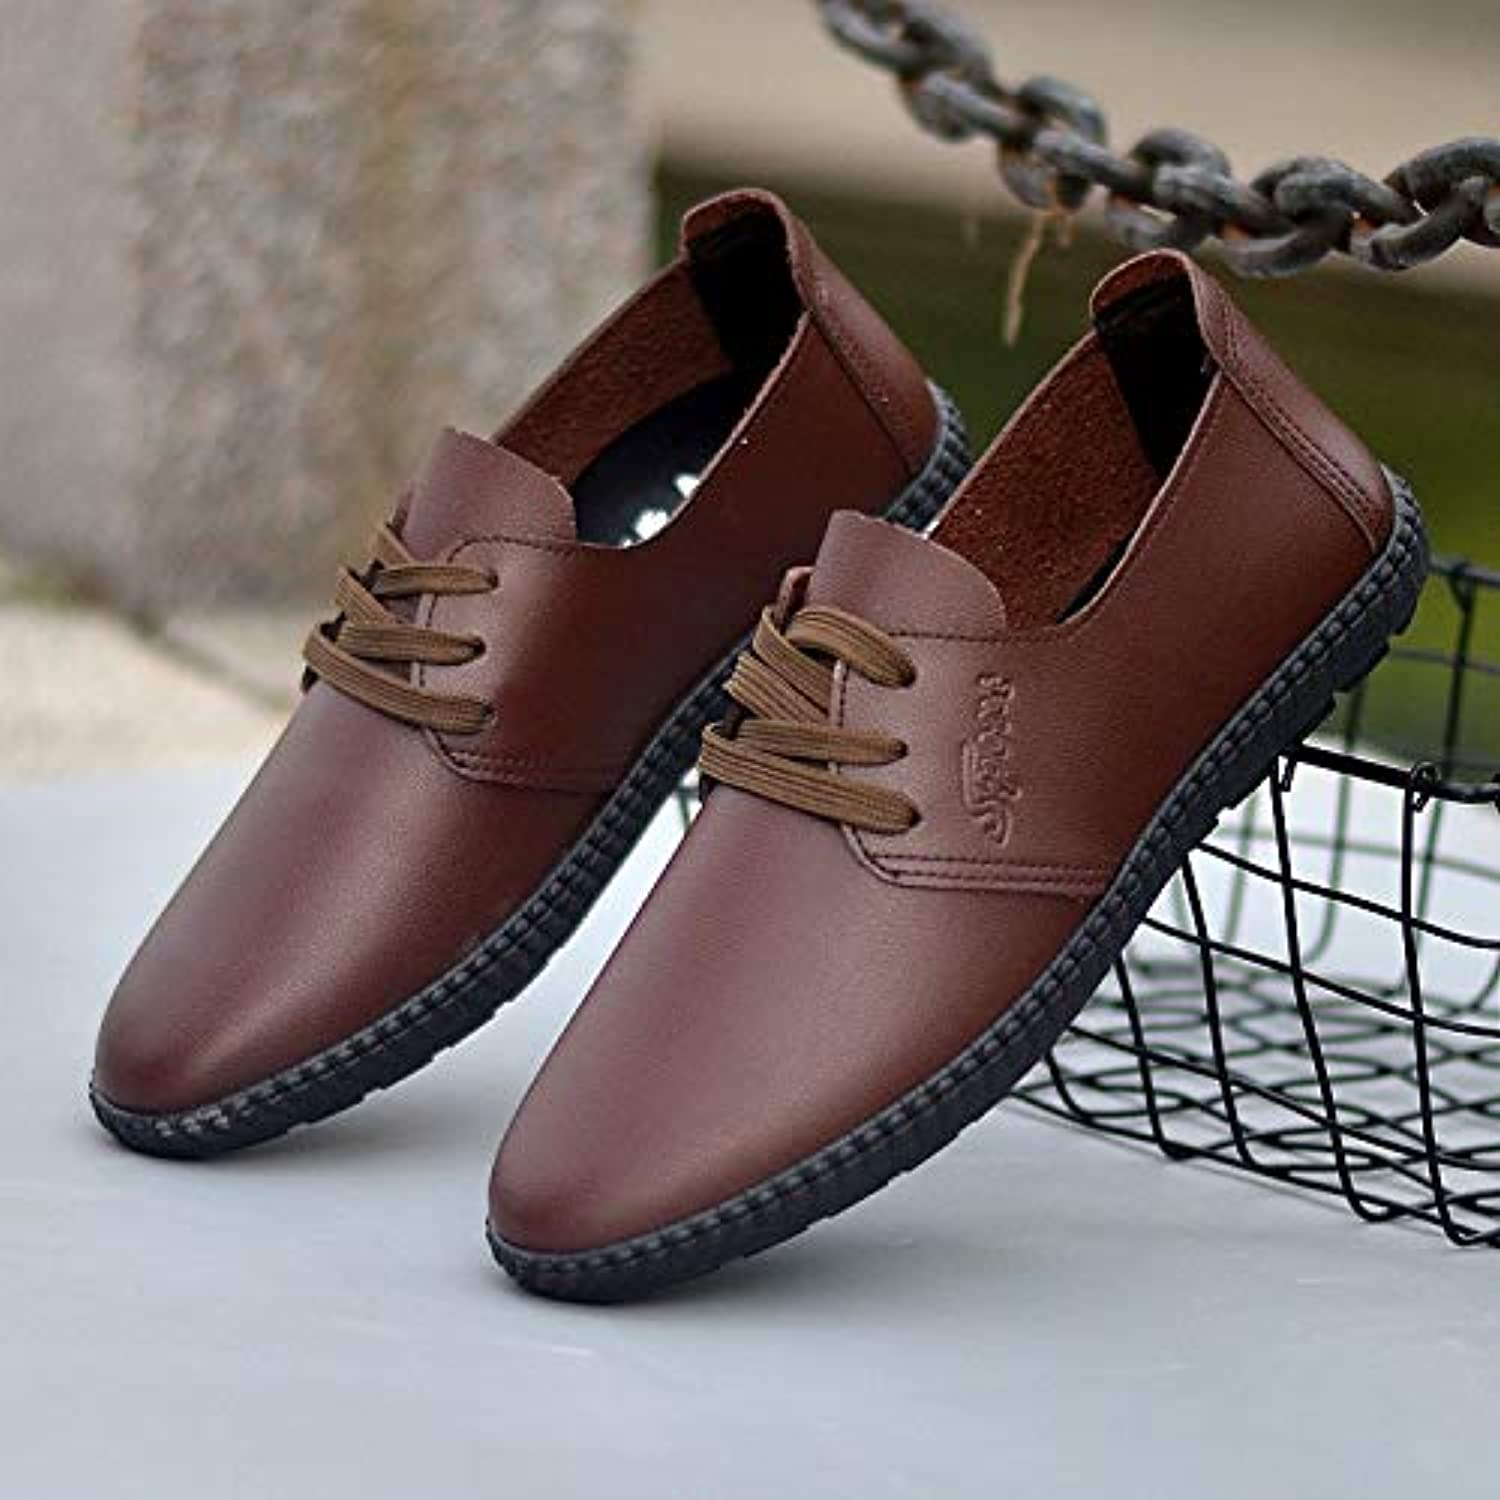 LOVDRAM Men'S Leather shoes Spring And Summer Men'S Casual Peas shoes Student Trend Round Head Pu Leather shoes Strap Lazy Single shoes